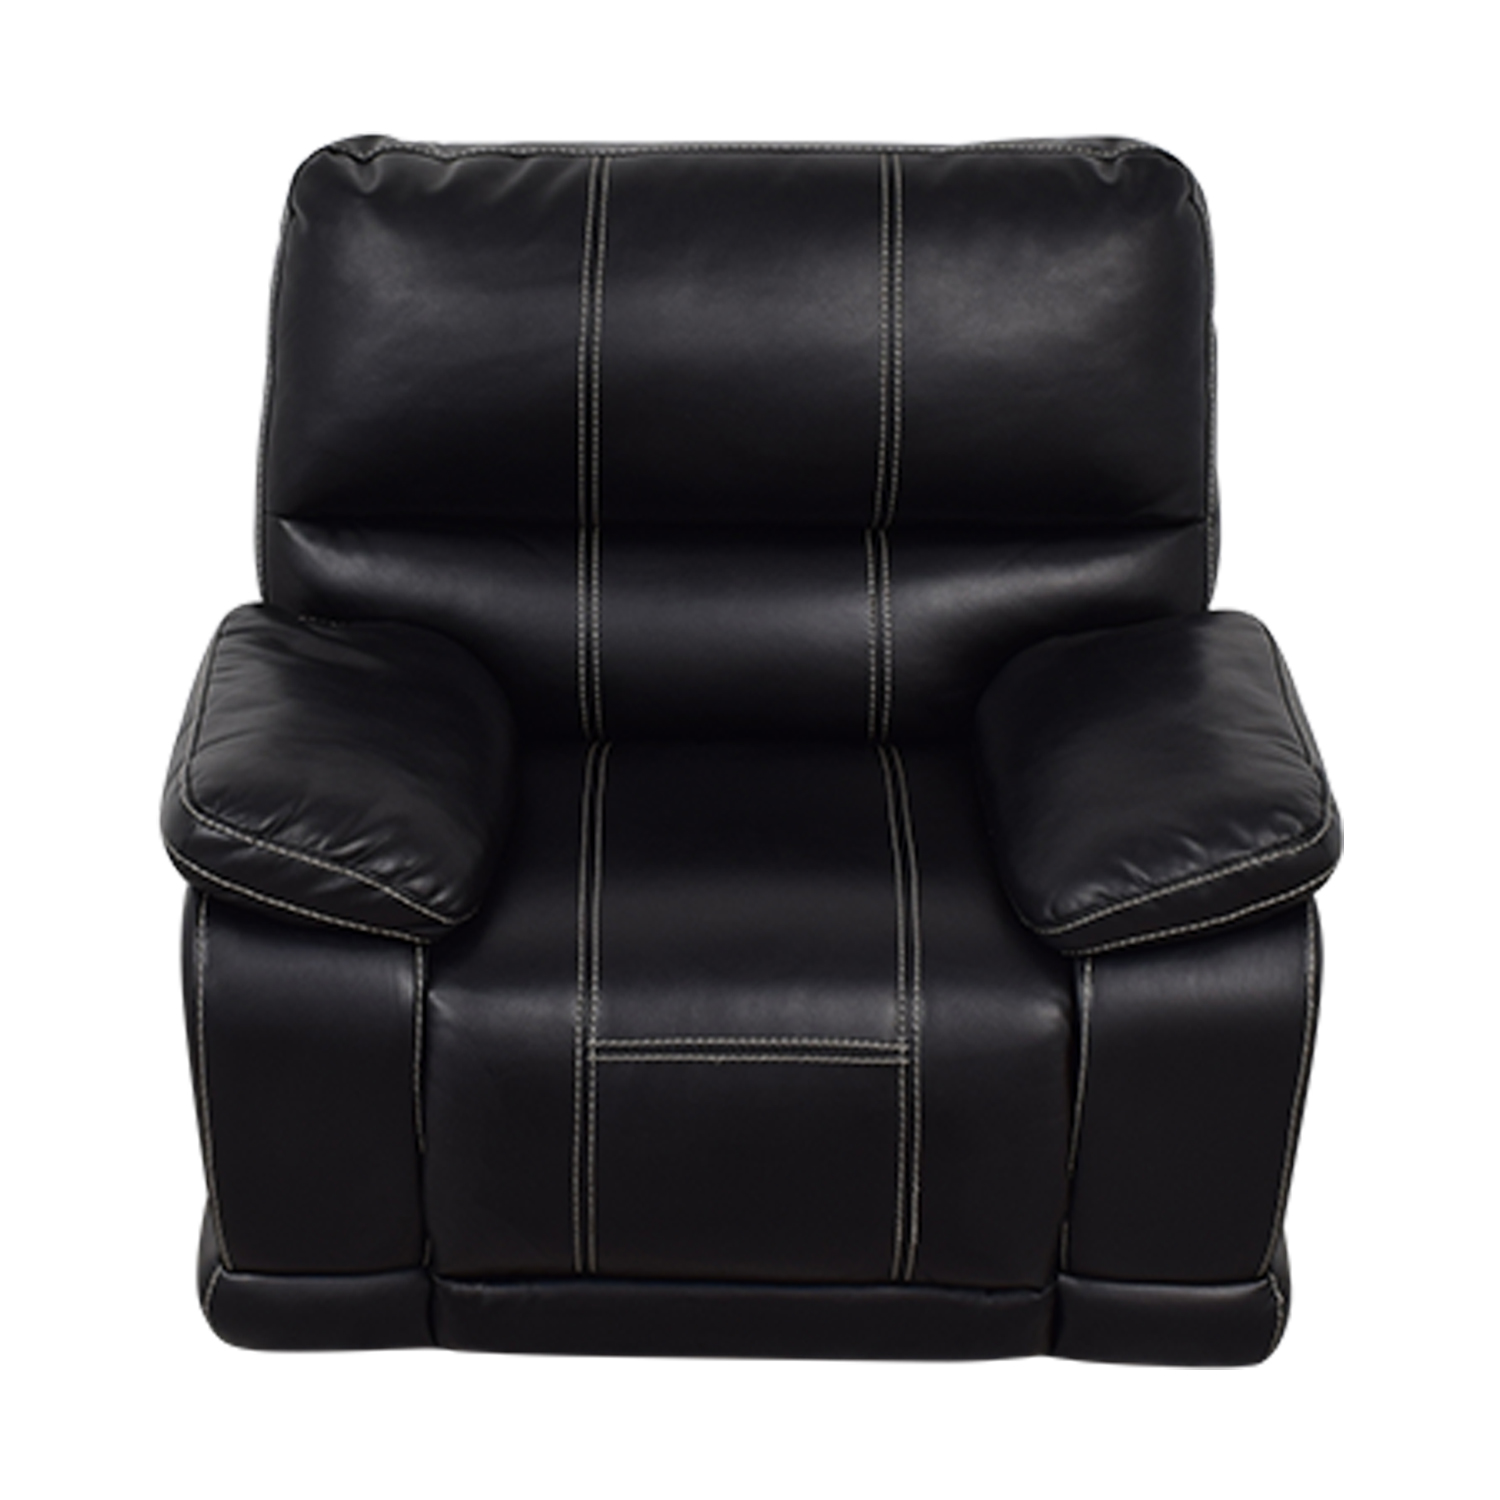 Klaussner Klaussner Black Reclining Chair price